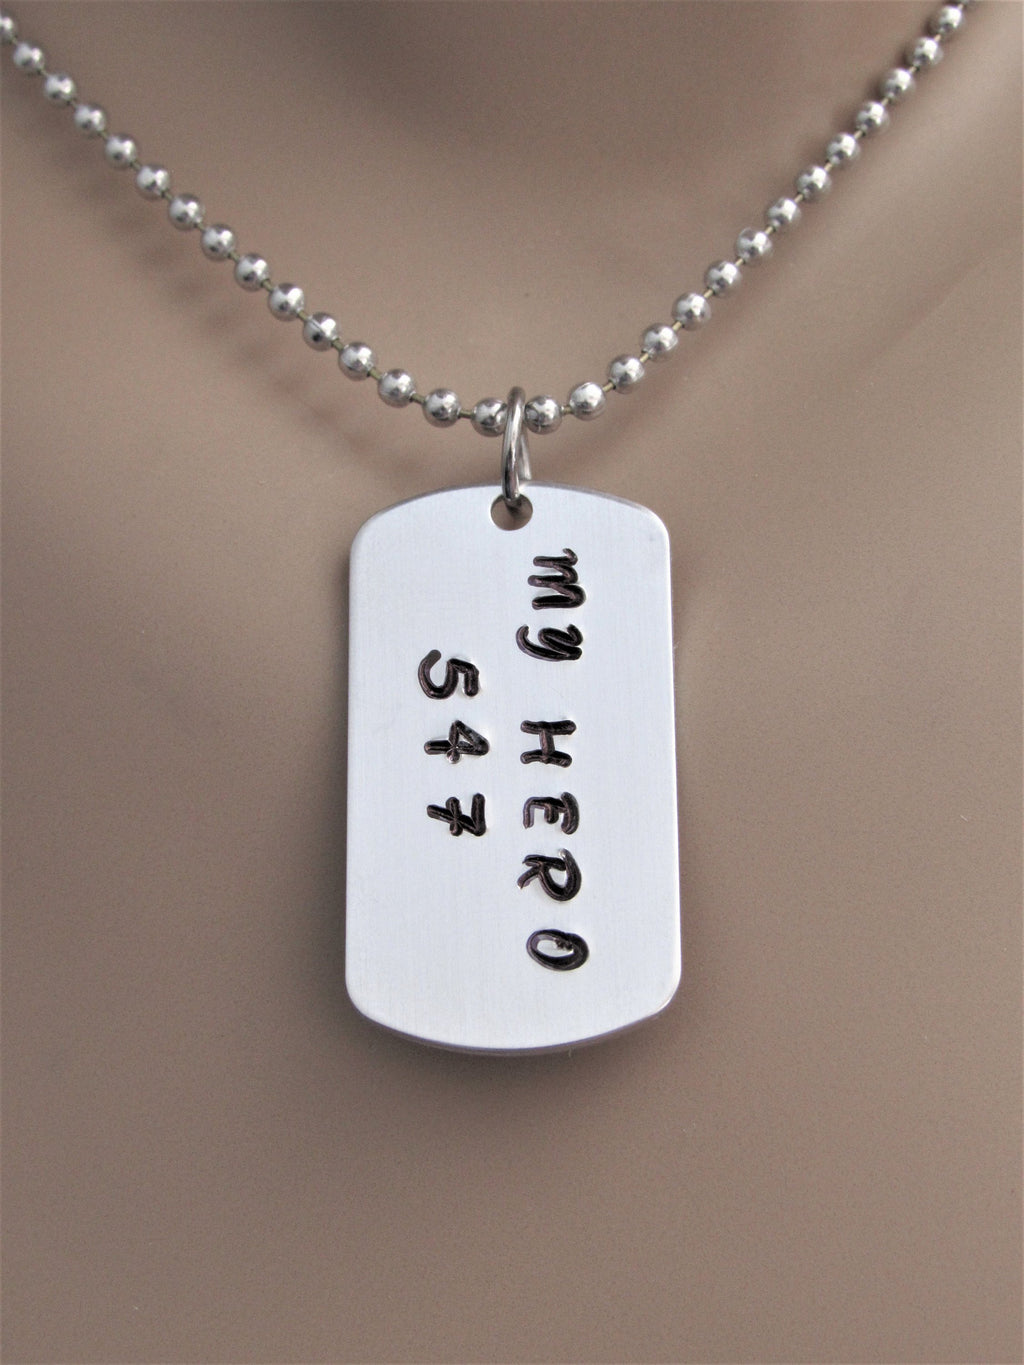 My Hero Police or Fire Fighter Son or Daughter Stamped Necklace With Badge Number